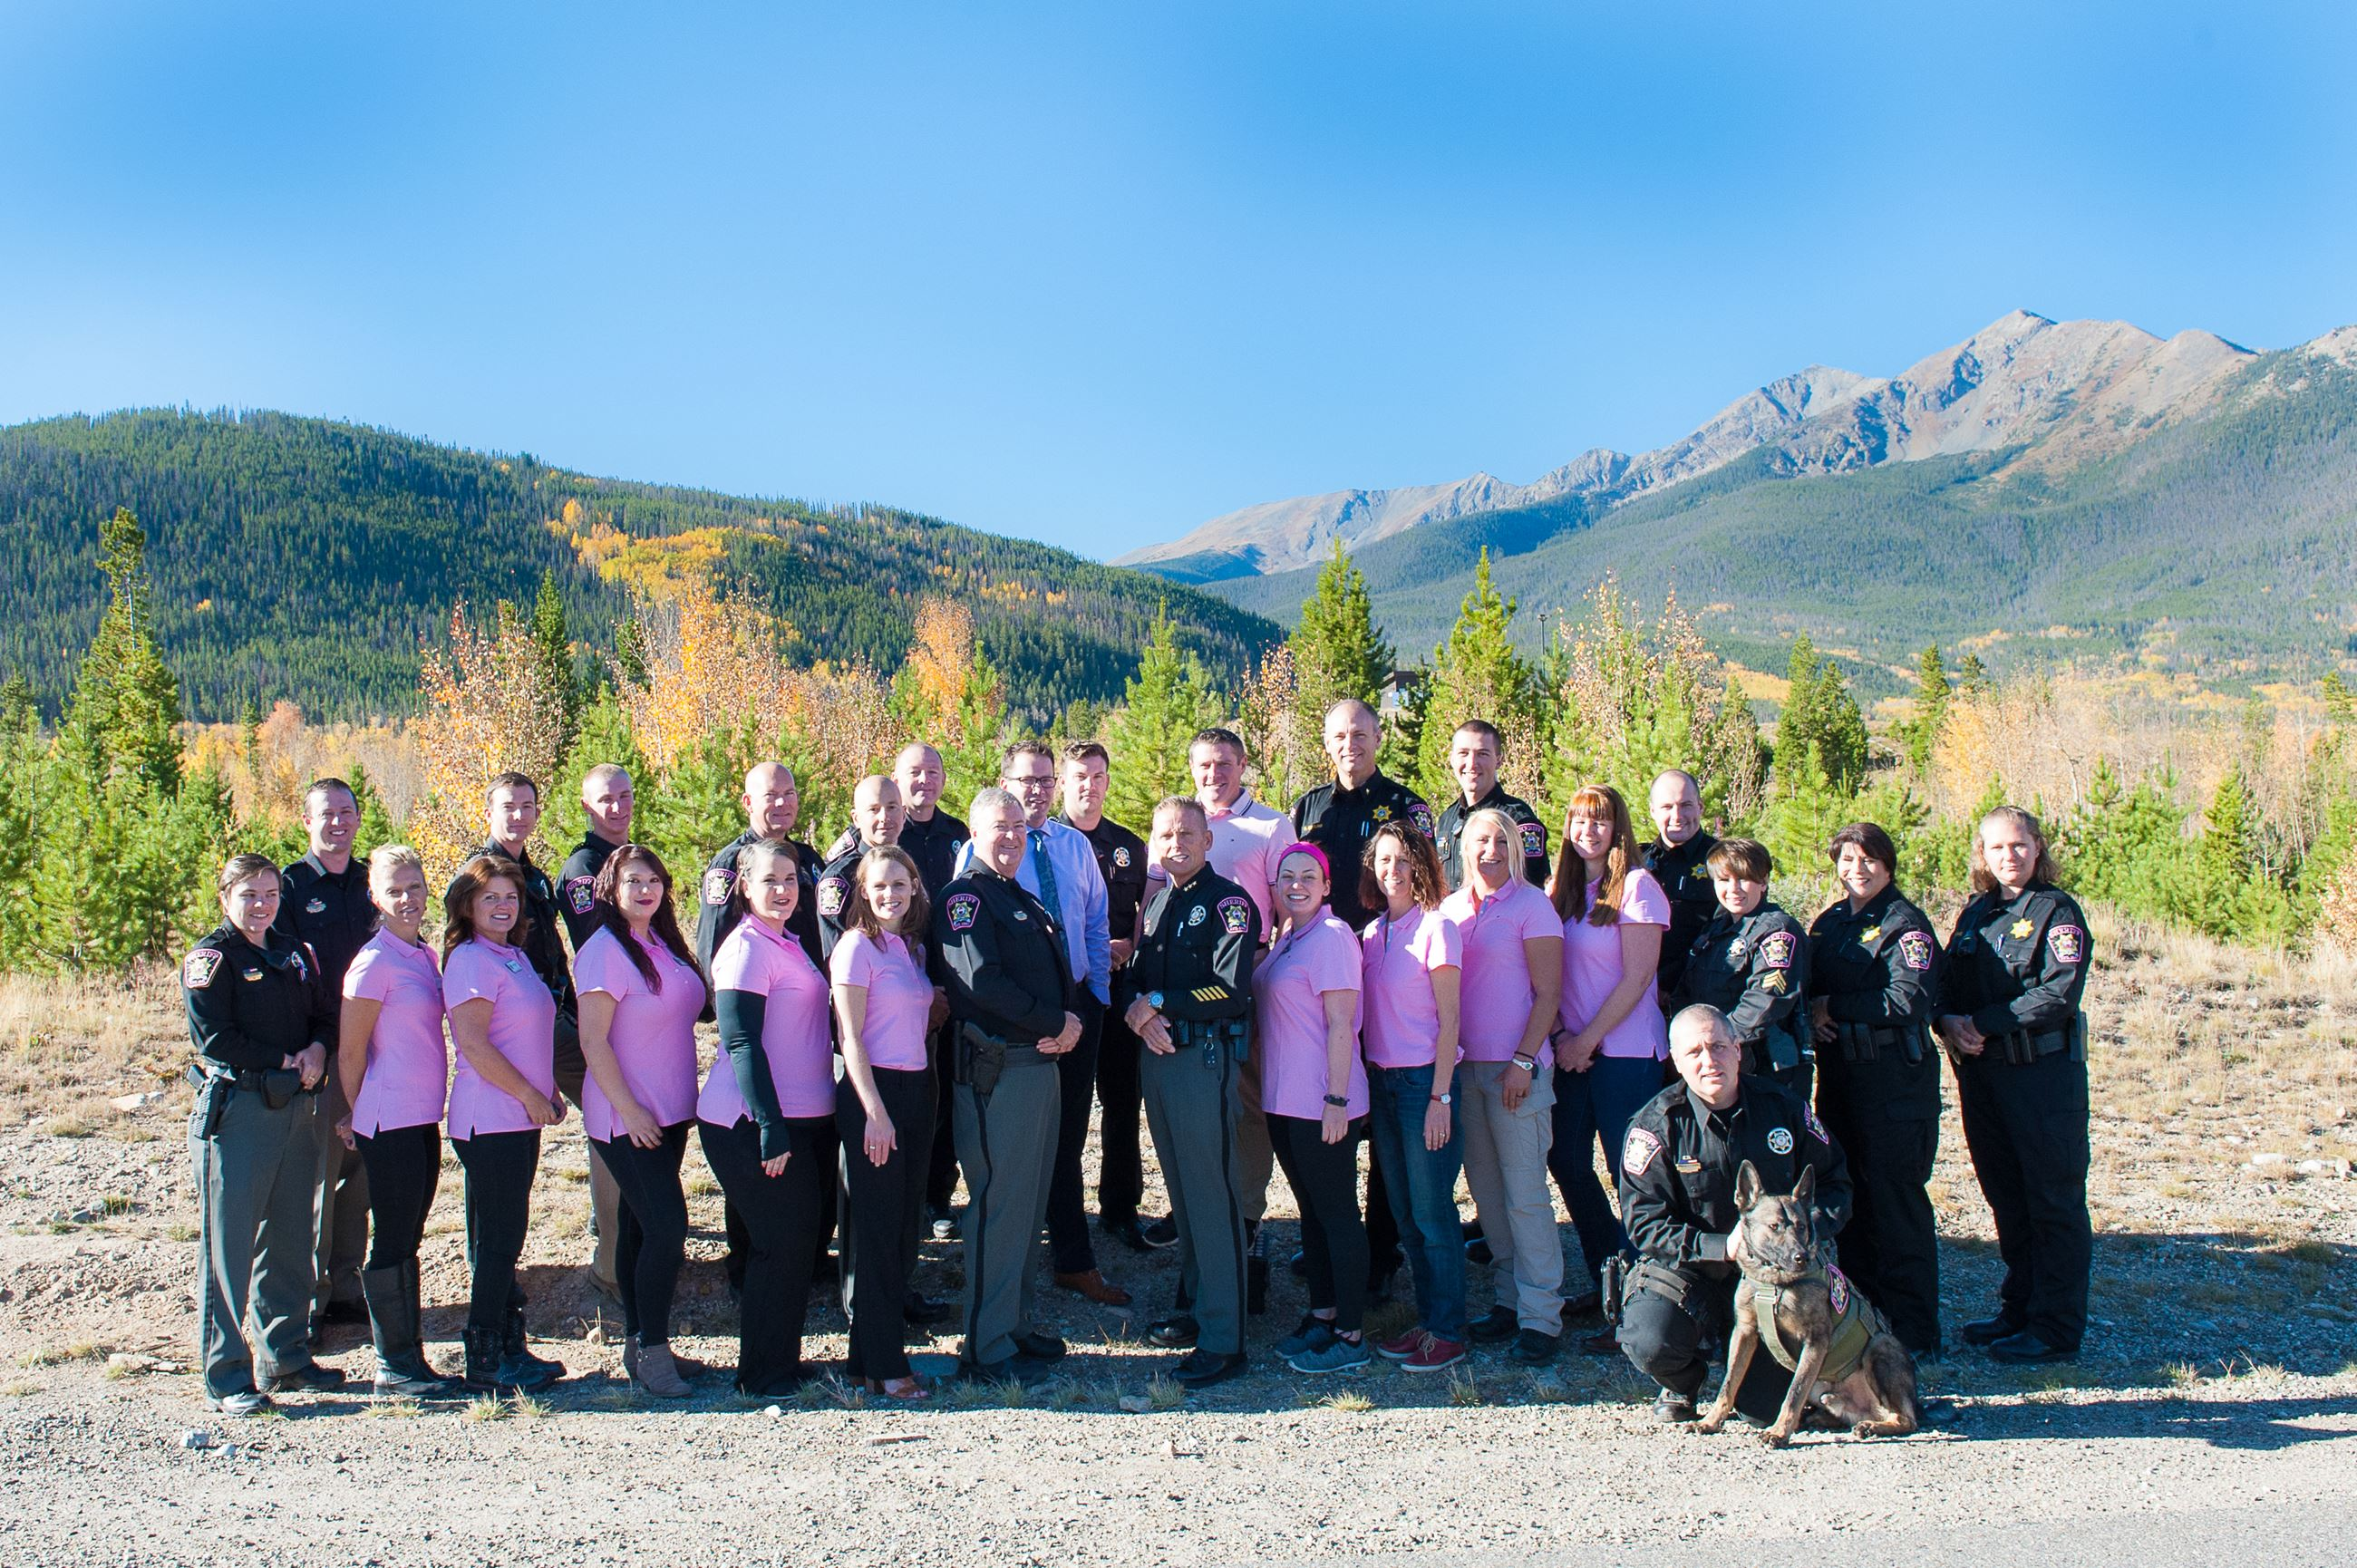 Summit County Sheriff Deputies Wear Pink Patches on Uniforms